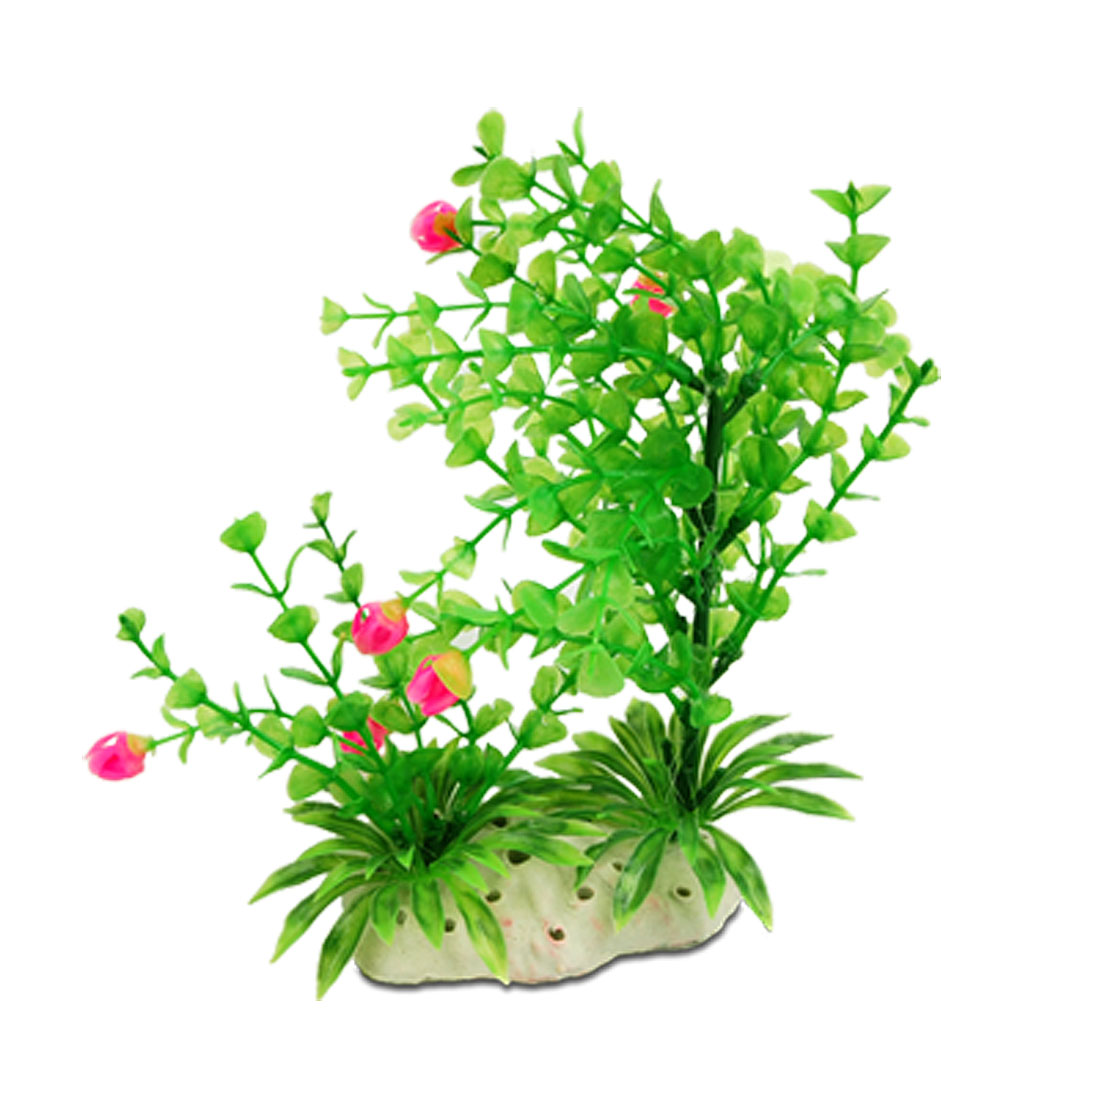 Plastic Green Grass Pink Flower Decor Aquarium Ornament